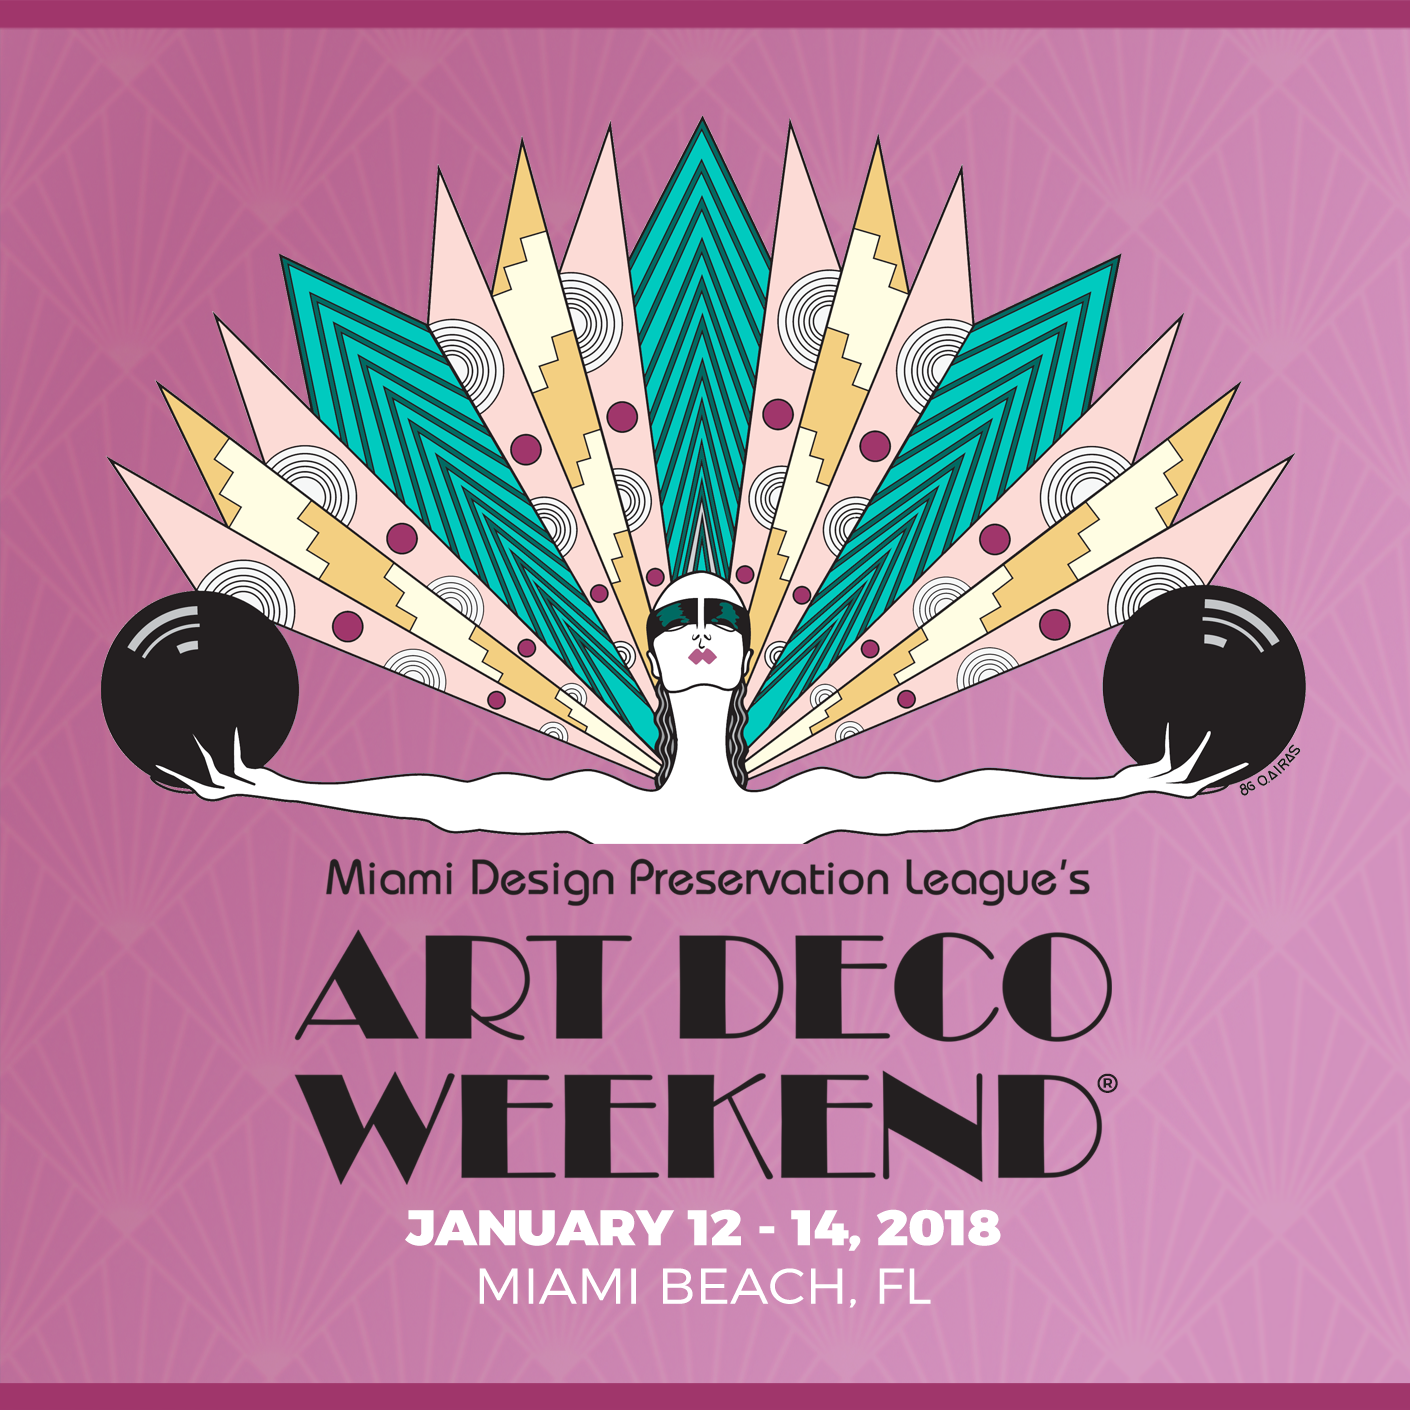 Cake Art Festival 2018 : Art Deco Weekend 2018 Share Media Agency Miami